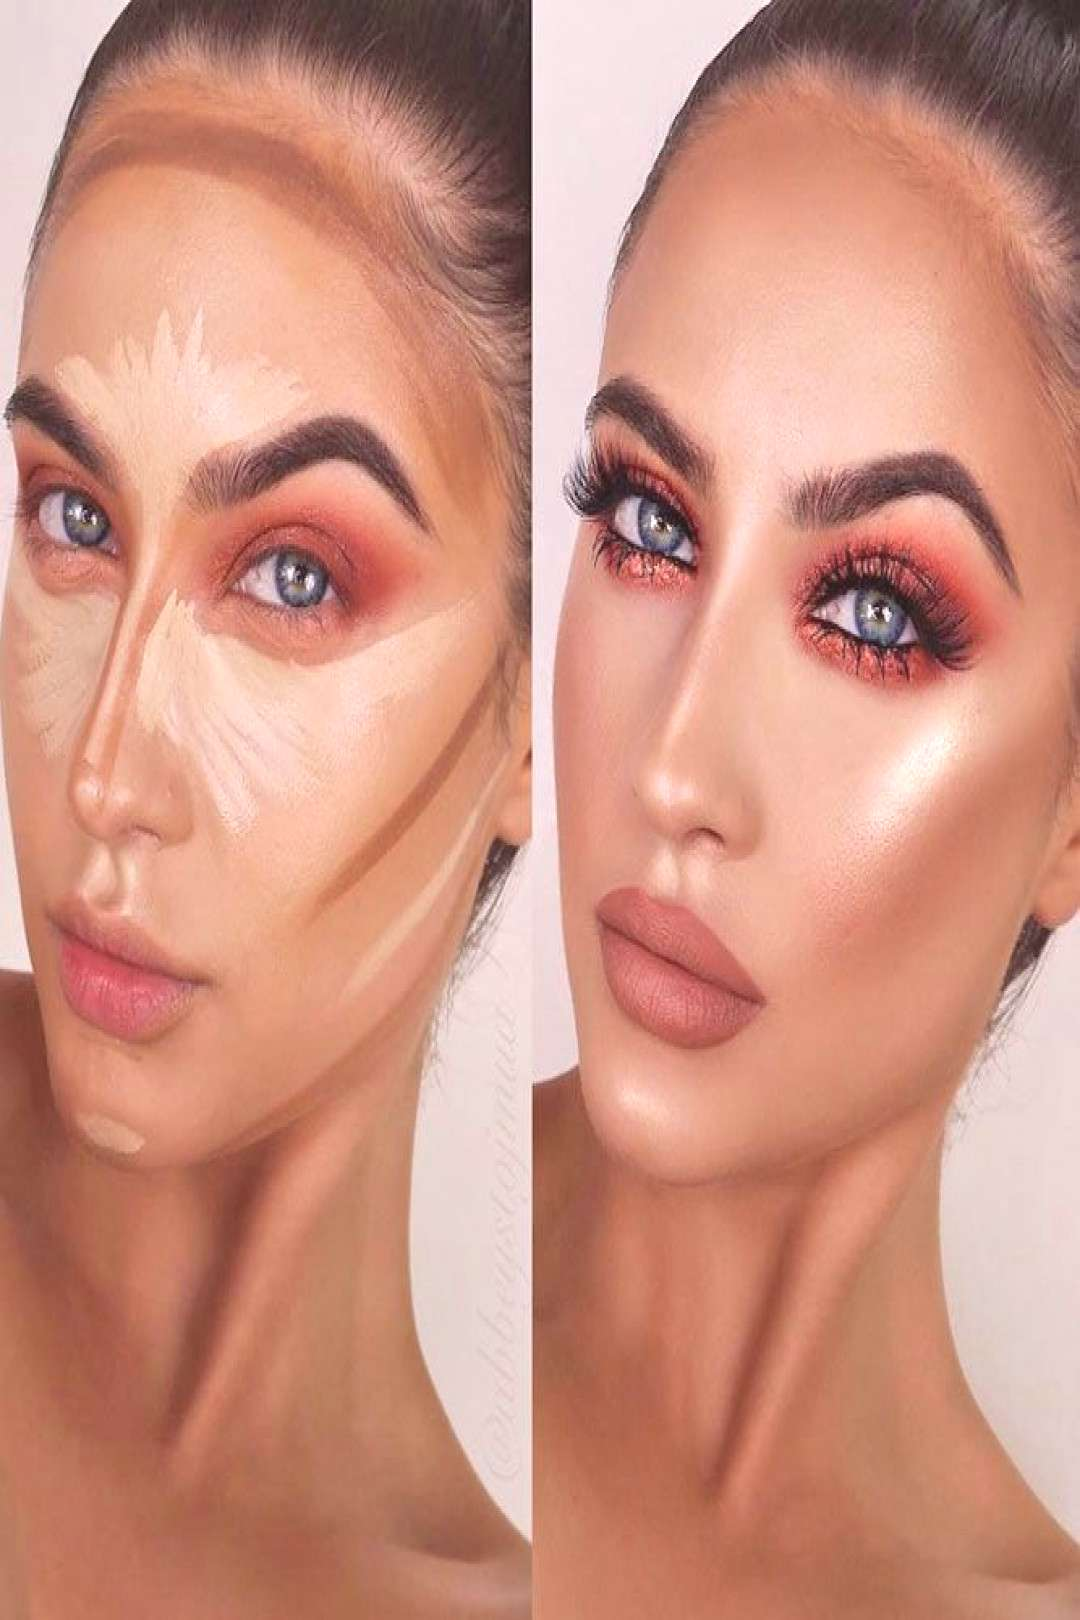 Some important tips for contouring in real life,